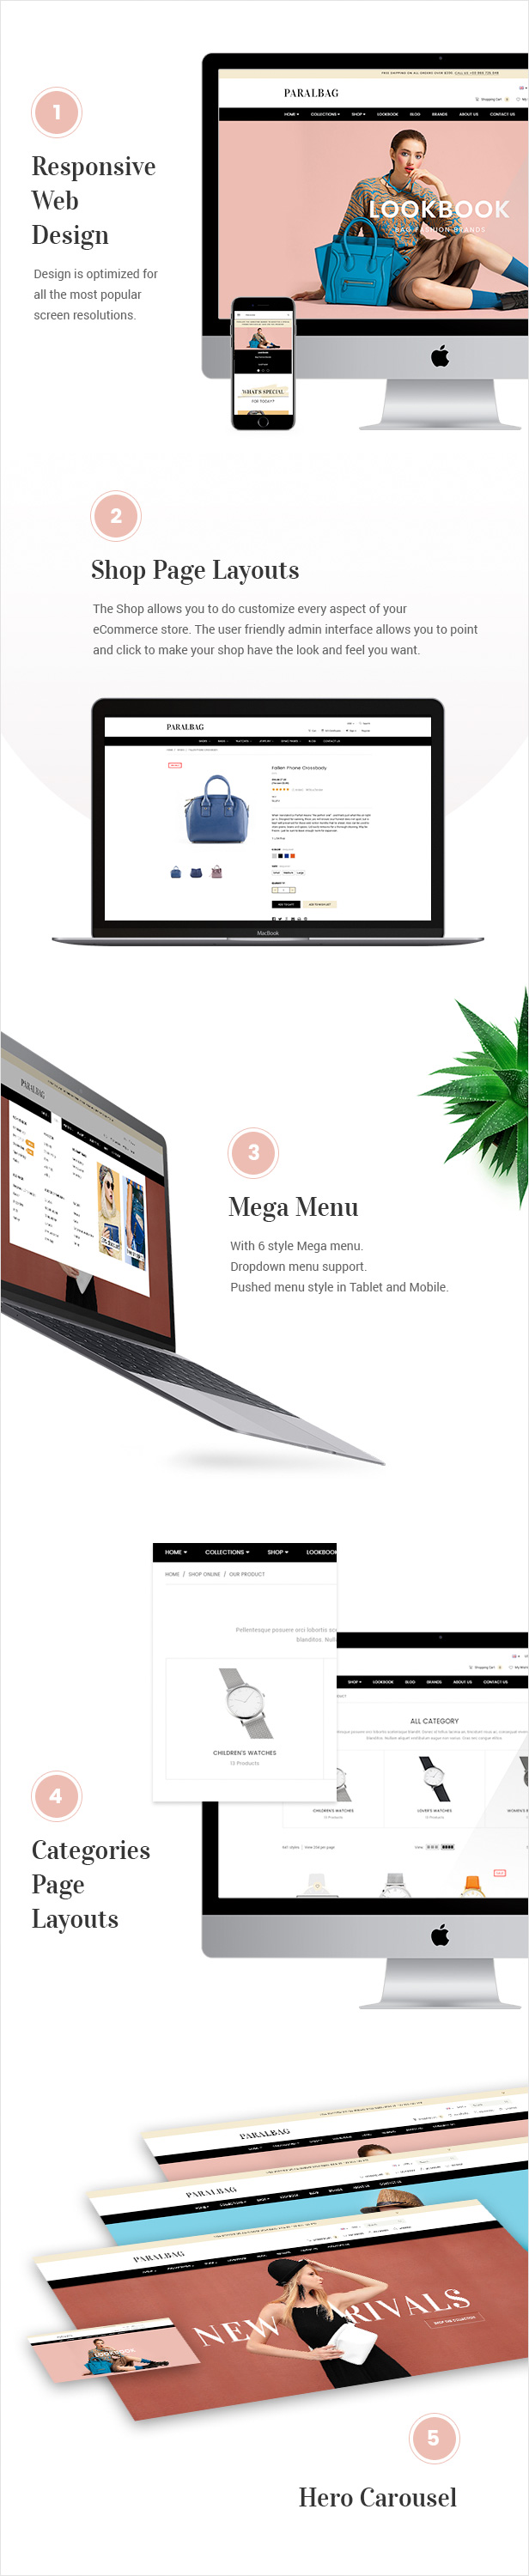 Responsive Web Design, Shop Page Layouts, Mega Menu, Category Page Layouts, Hero Carousel, Products List